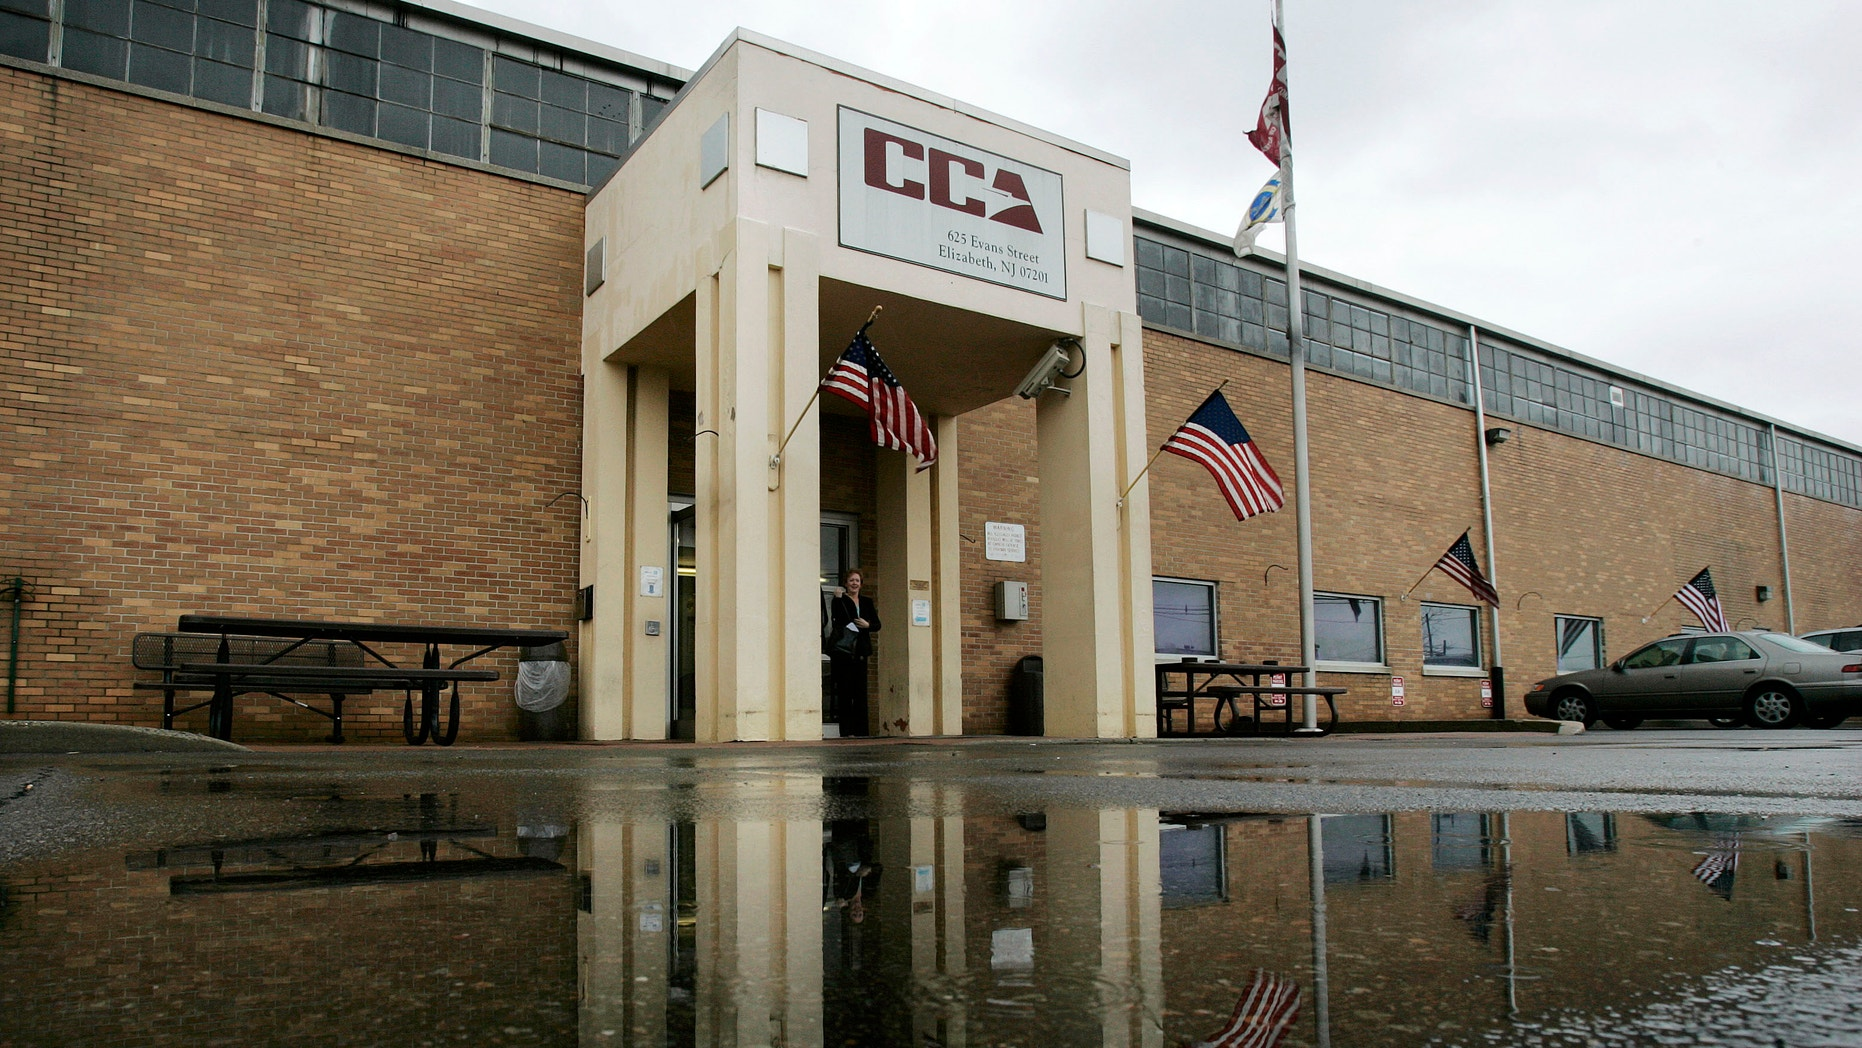 File photo shows the Corrections Corporation of America (CCA) detention center in Elizabeth, N.J.